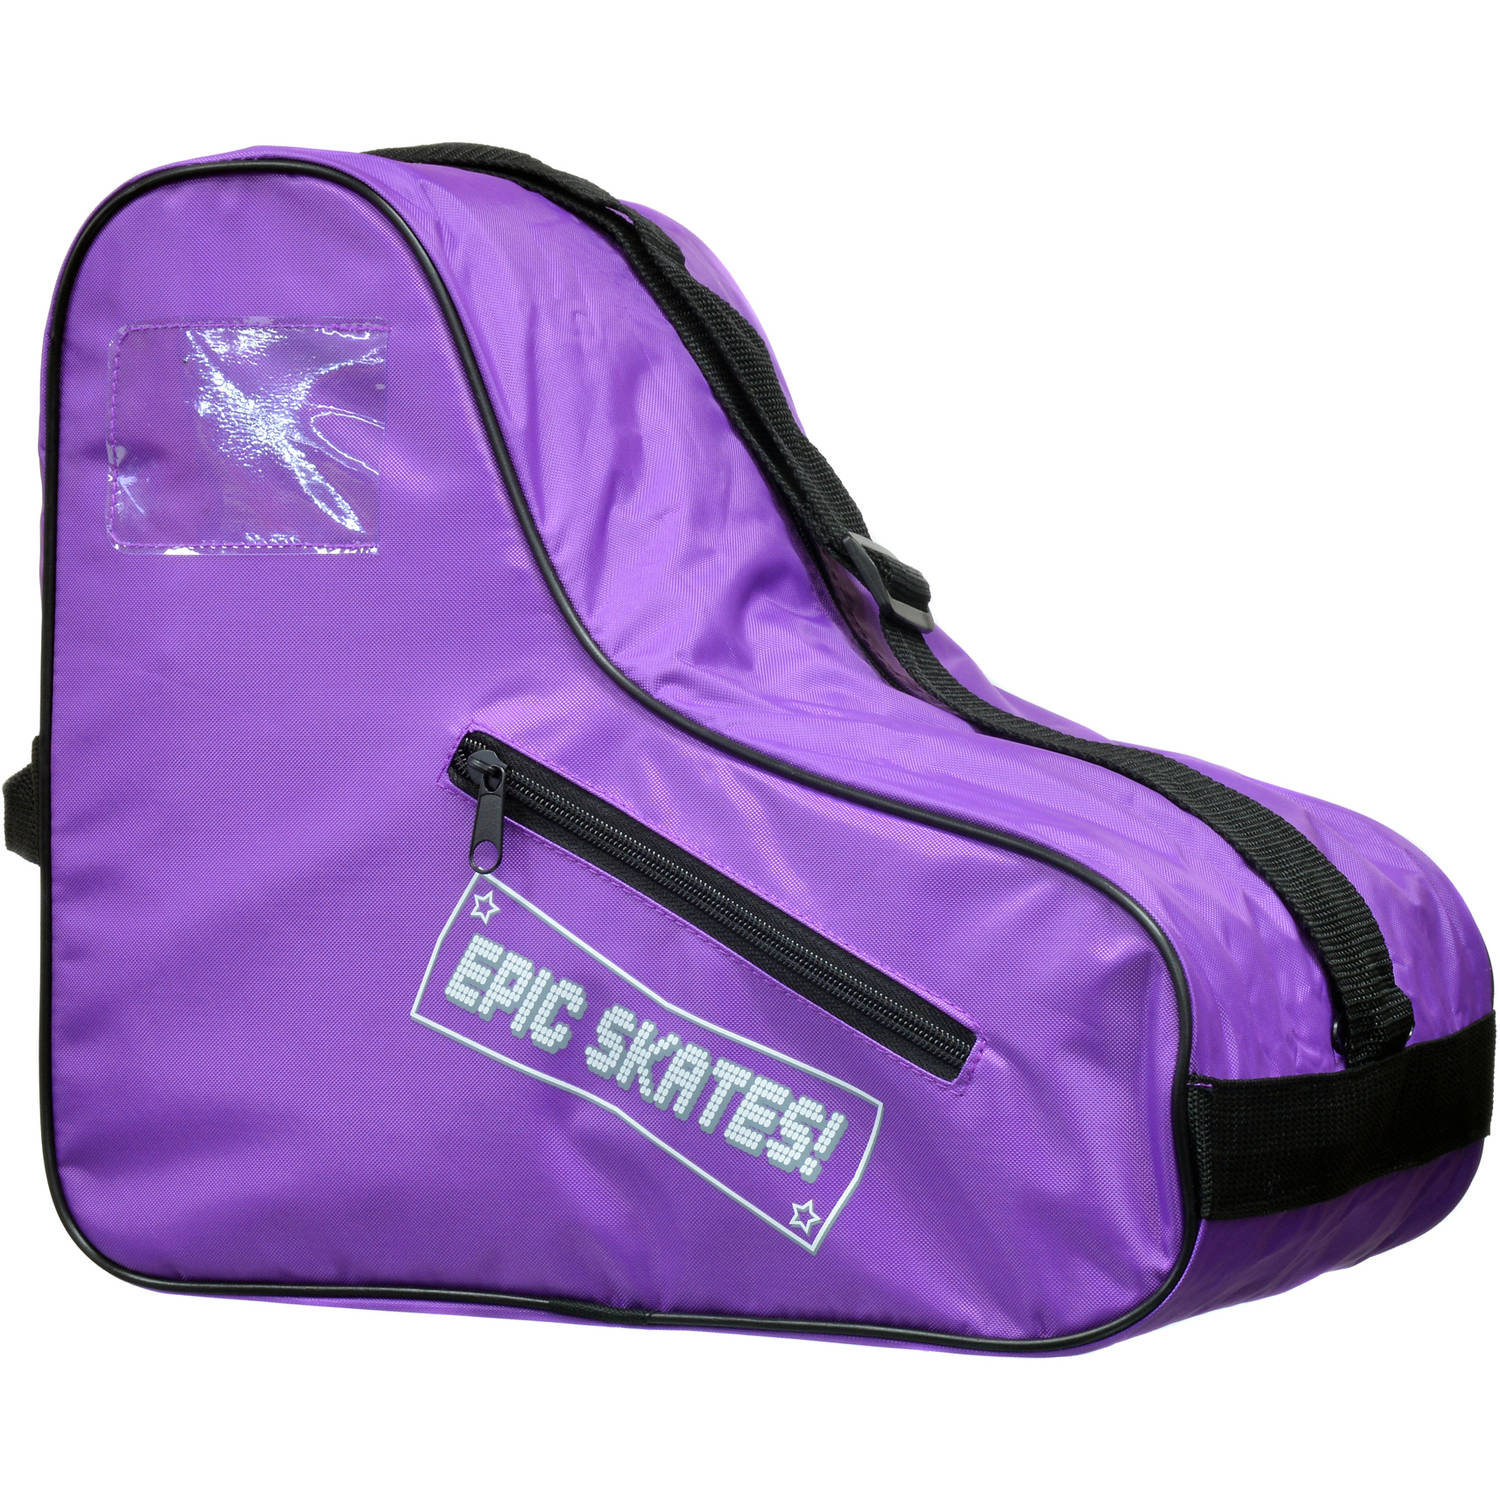 Epic Purple Roller Skate Bag